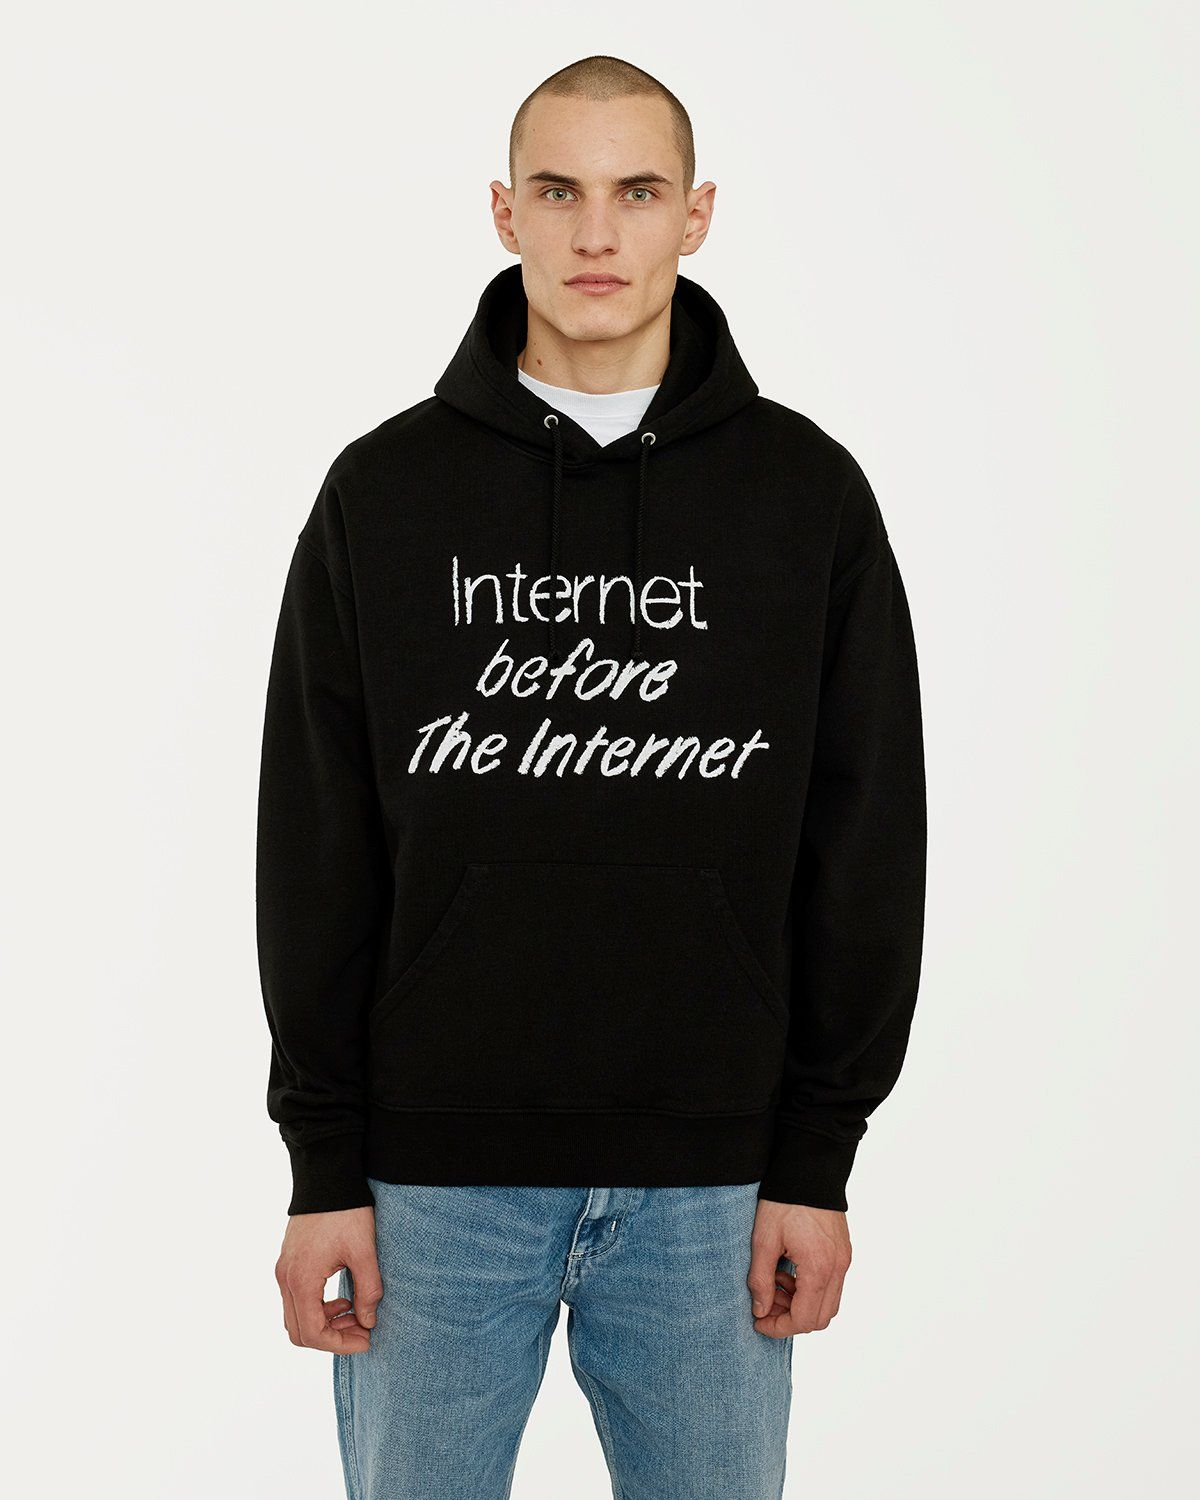 colette Mon Amour - The Internet Before The Internet Hoodie Black - Image 2